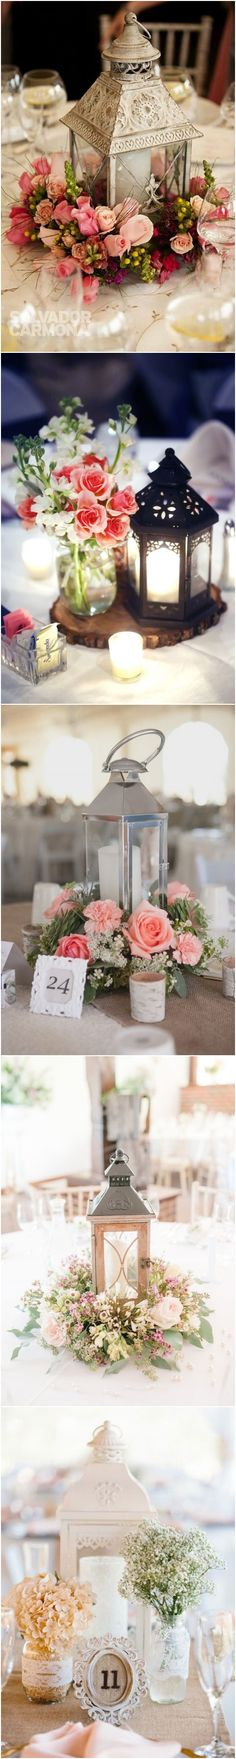 rustic latern wedding centerpieces / http://www.deerpearlflowers.com/wedding-centerpiece-ideas/